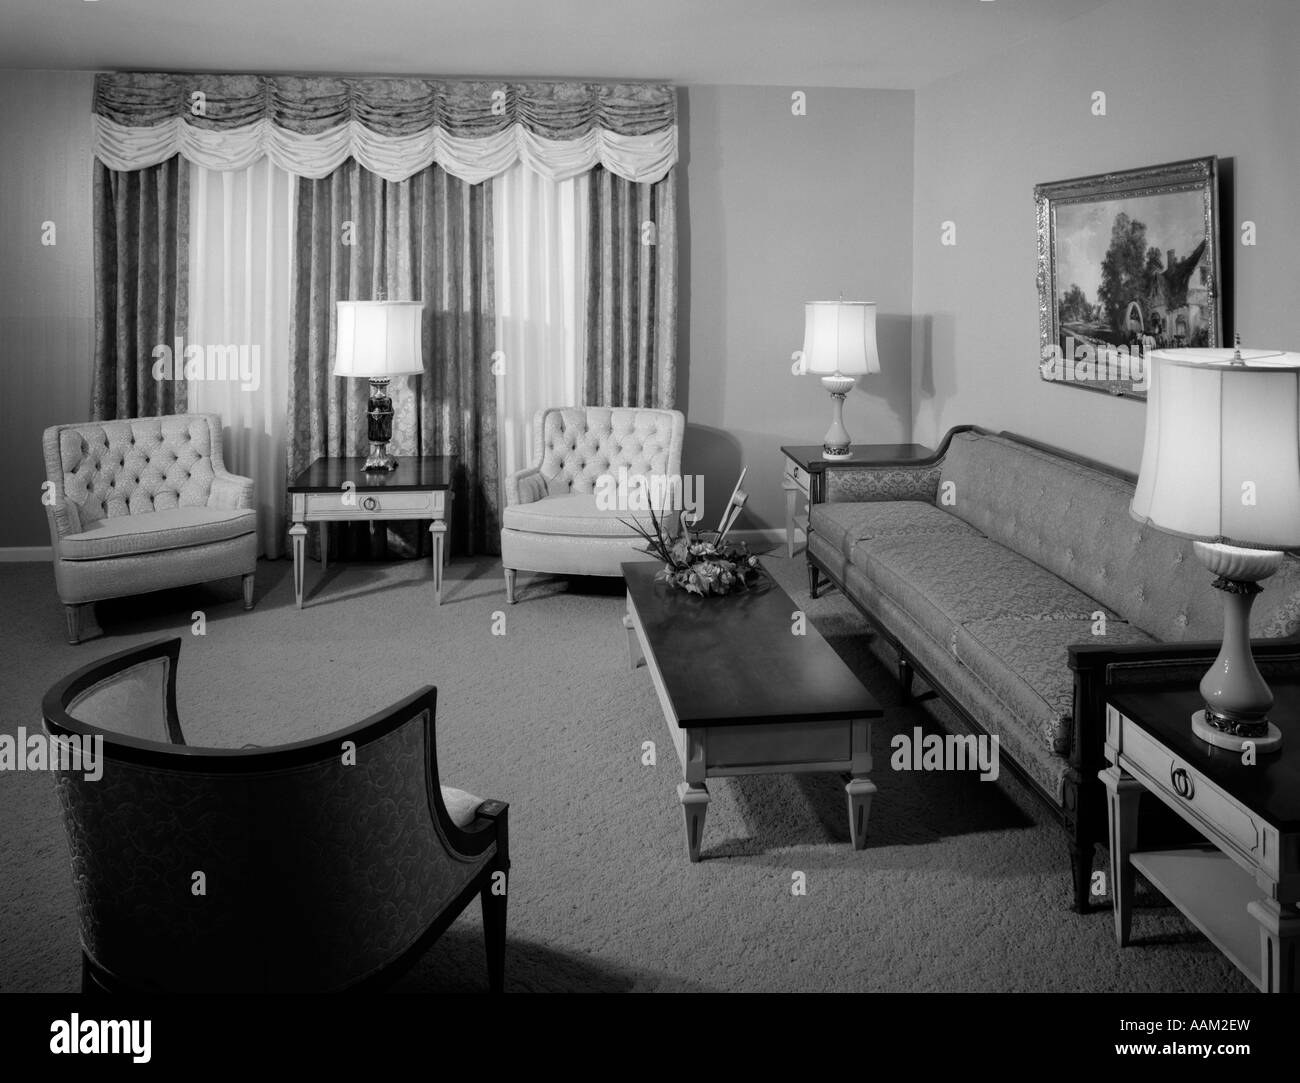 1960s FORMAL LIVING ROOM INTERIOR WITH FULL-LENGTH DRAPES ...